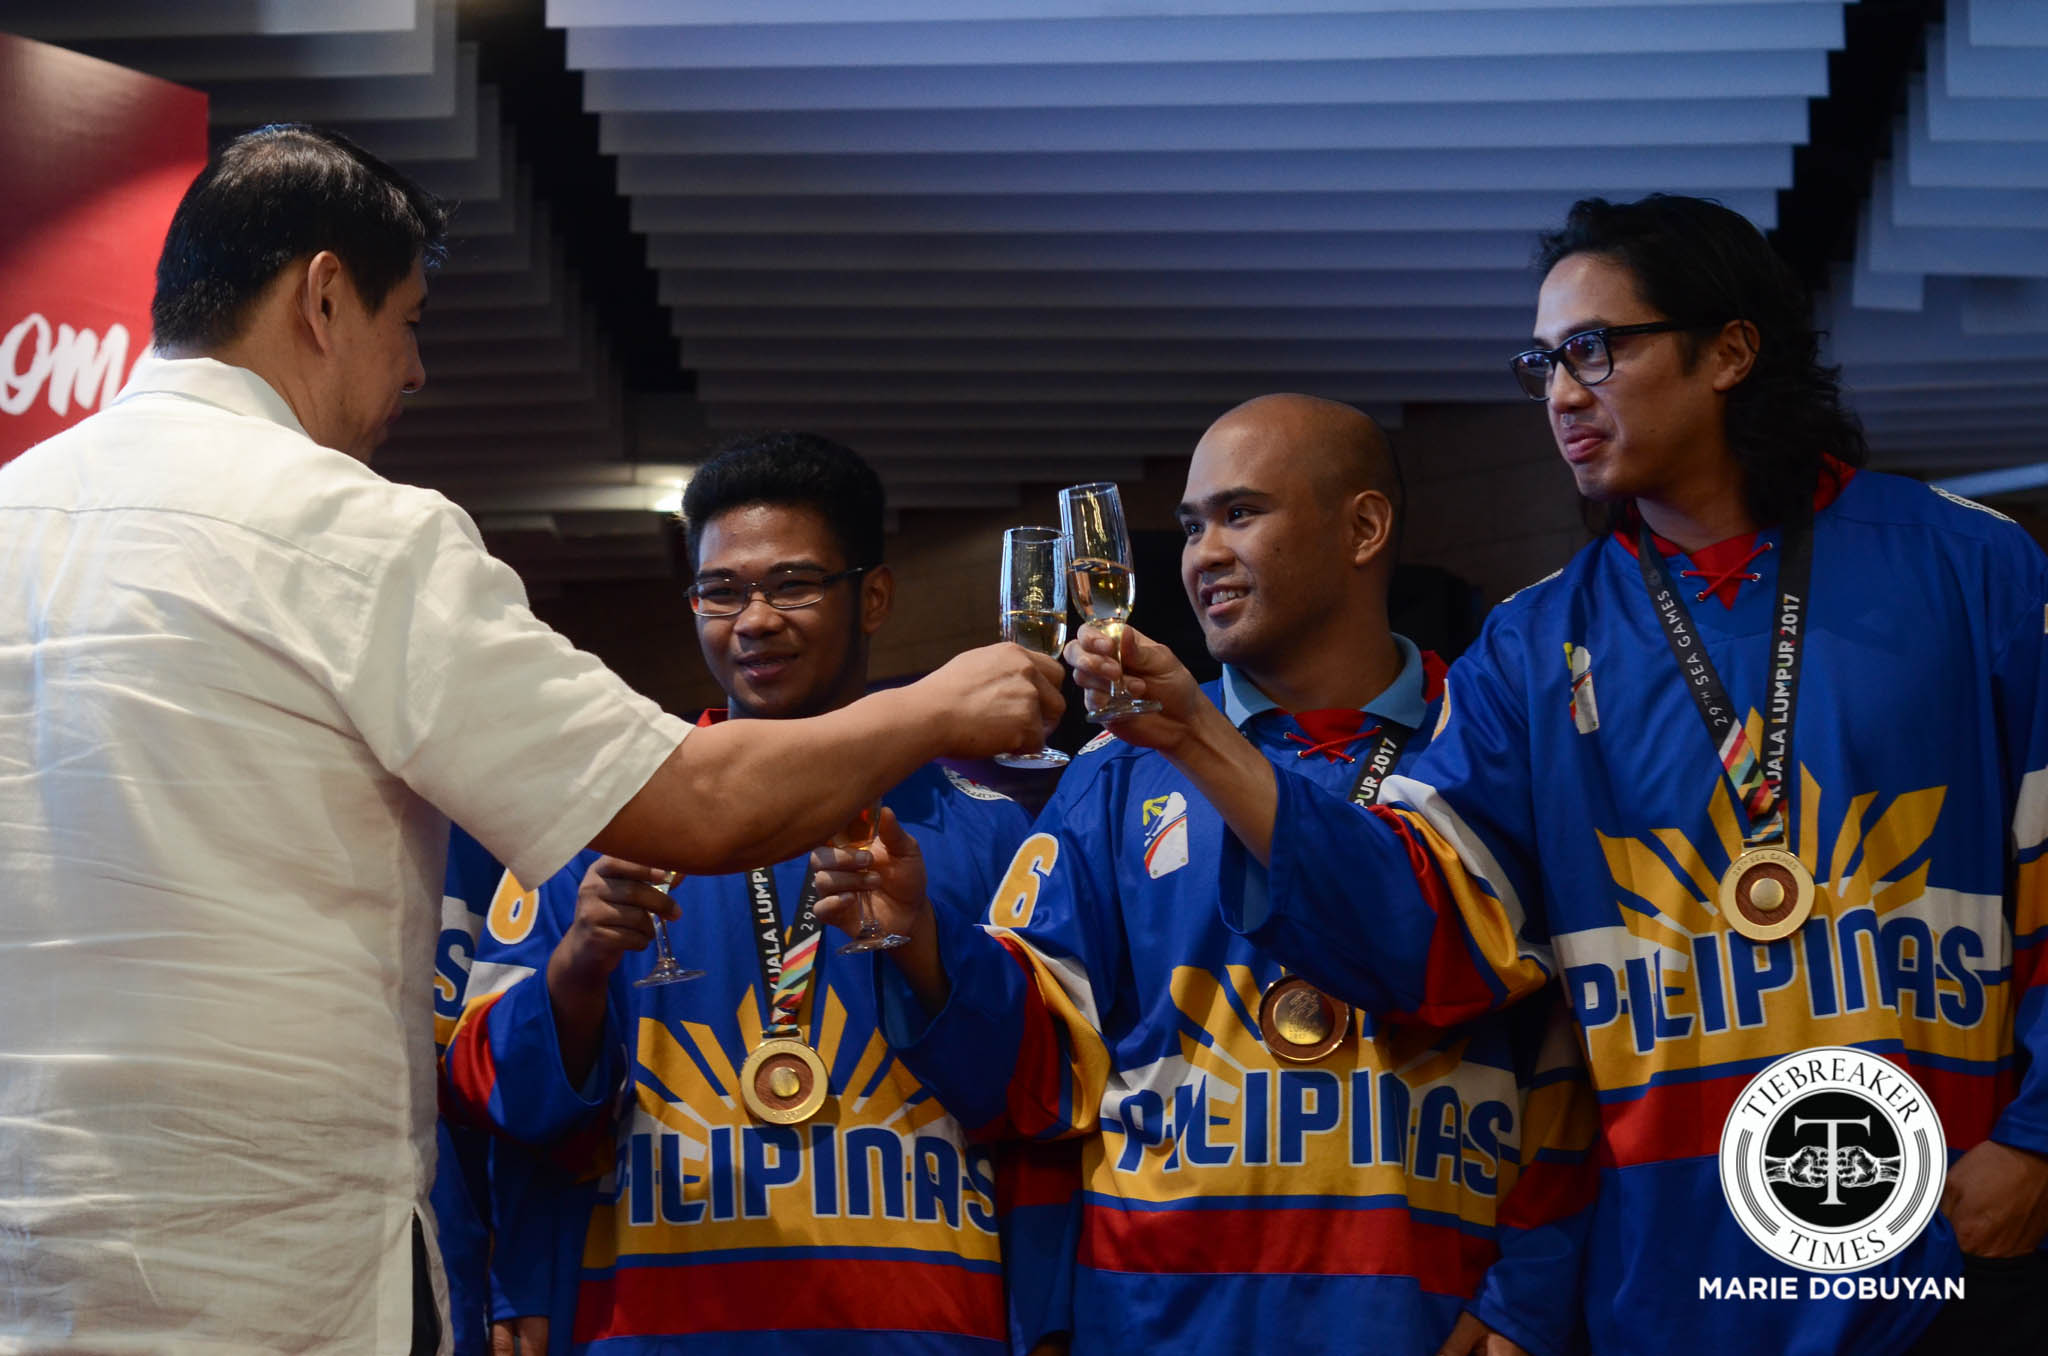 Philippine Sports News - Tiebreaker Times Tough ordeals make historic gold worth it for Ice Hockey Team 2017 SEA Games Ice Hockey News  Paul Gabriel Sanchez John Steven Fuglister 2017 SEA Games - Ice Hockey